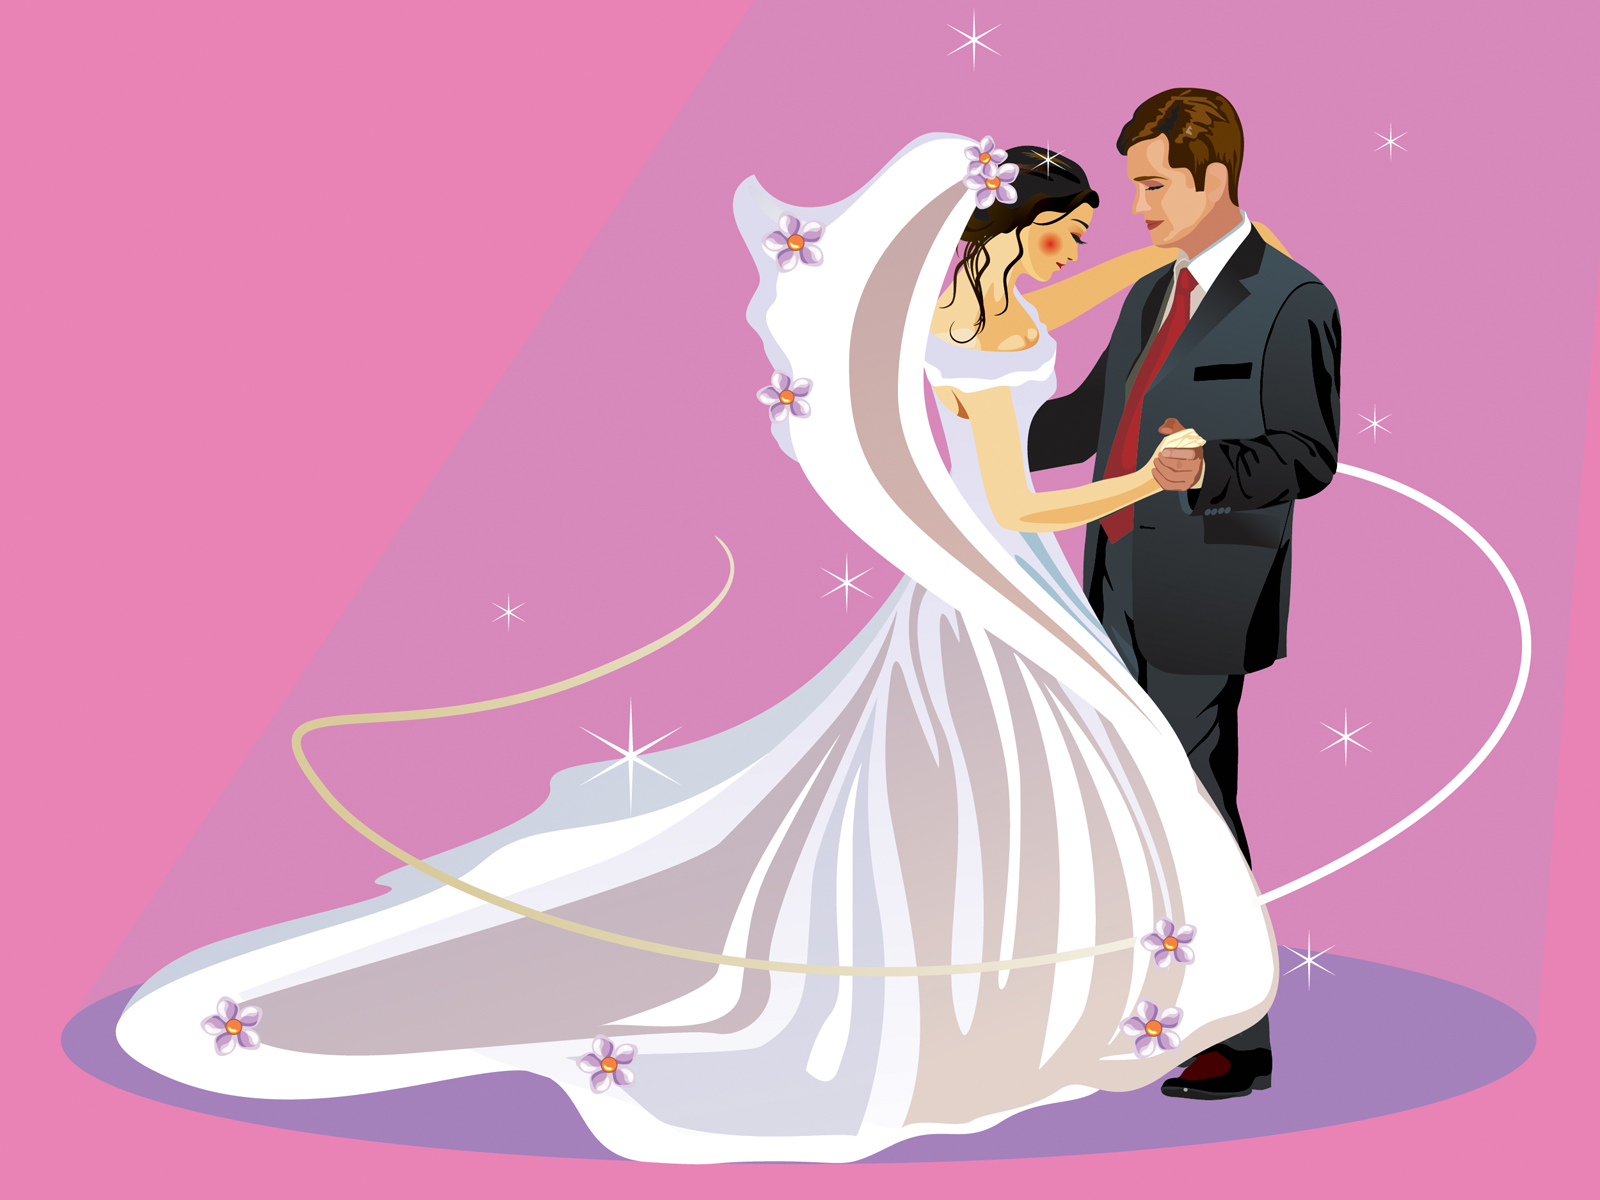 Young Wedding with Dancing Backgrounds